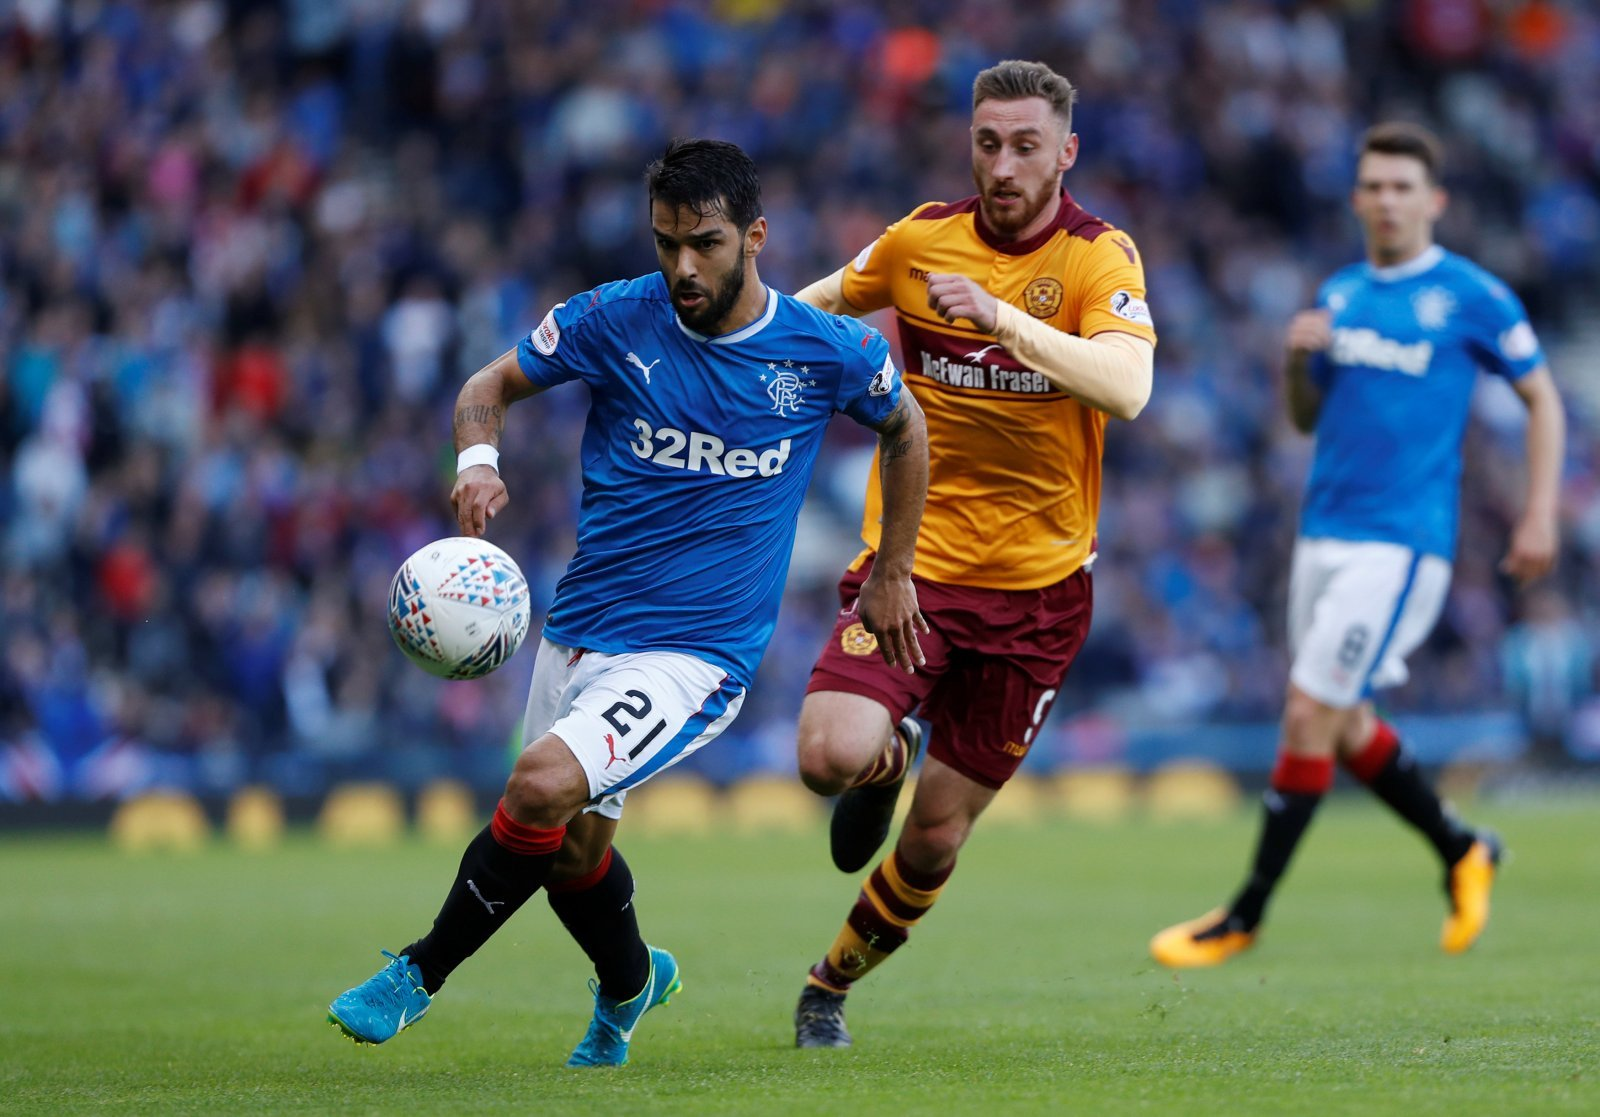 Rangers: These fans would take Daniel Candeias back at Ibrox